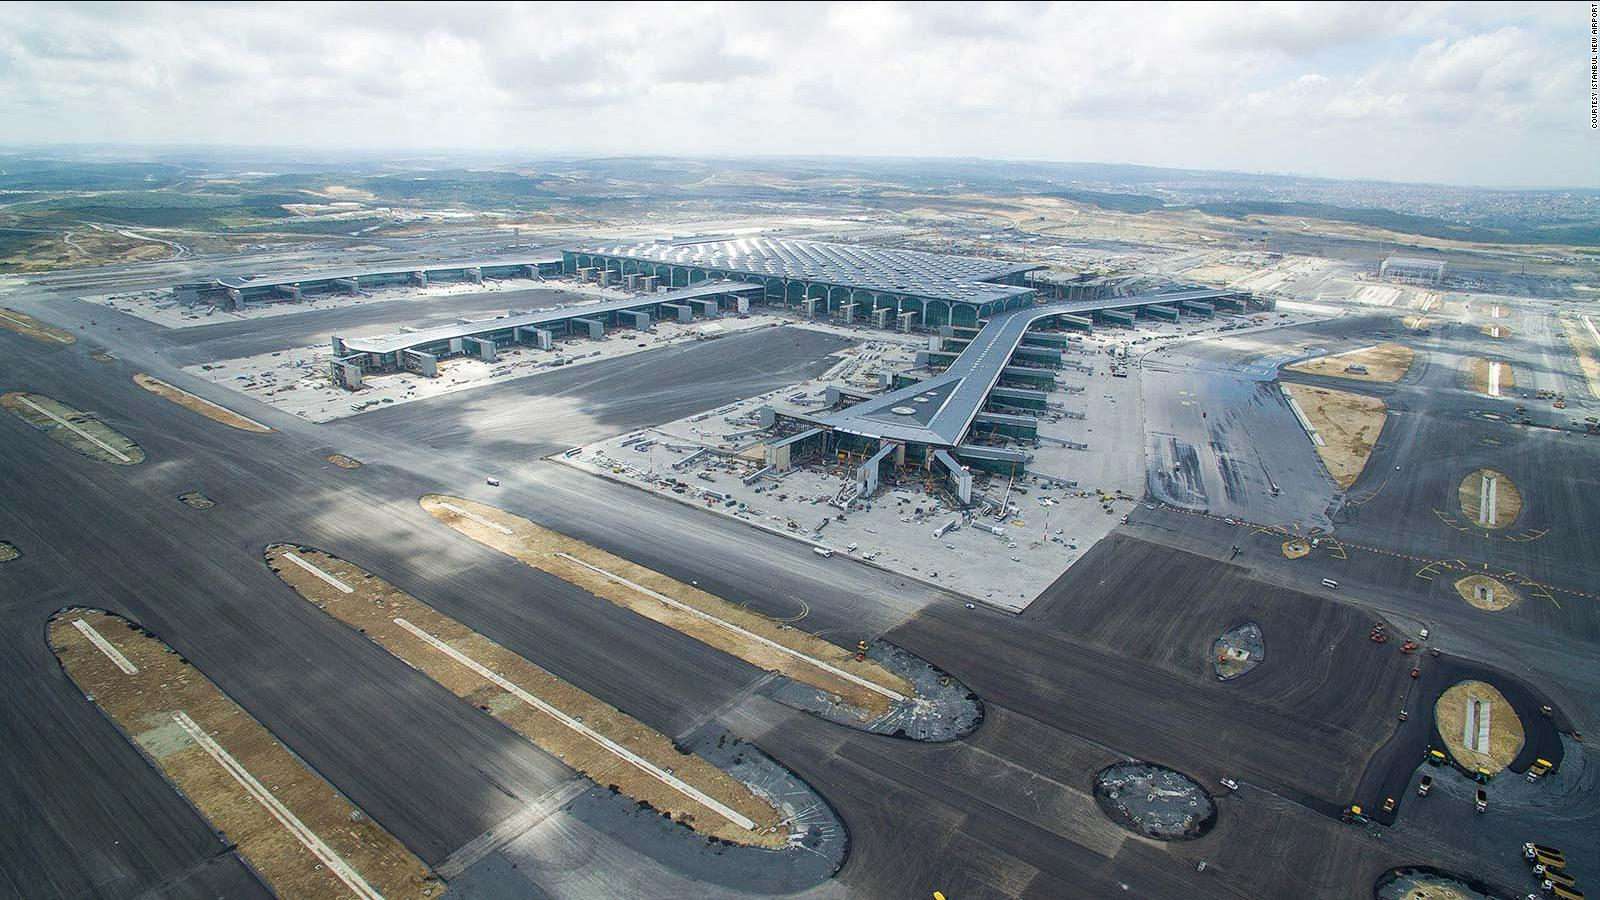 Airport Authority of India plans to construct new 100 airports, Waterdromes and heliports